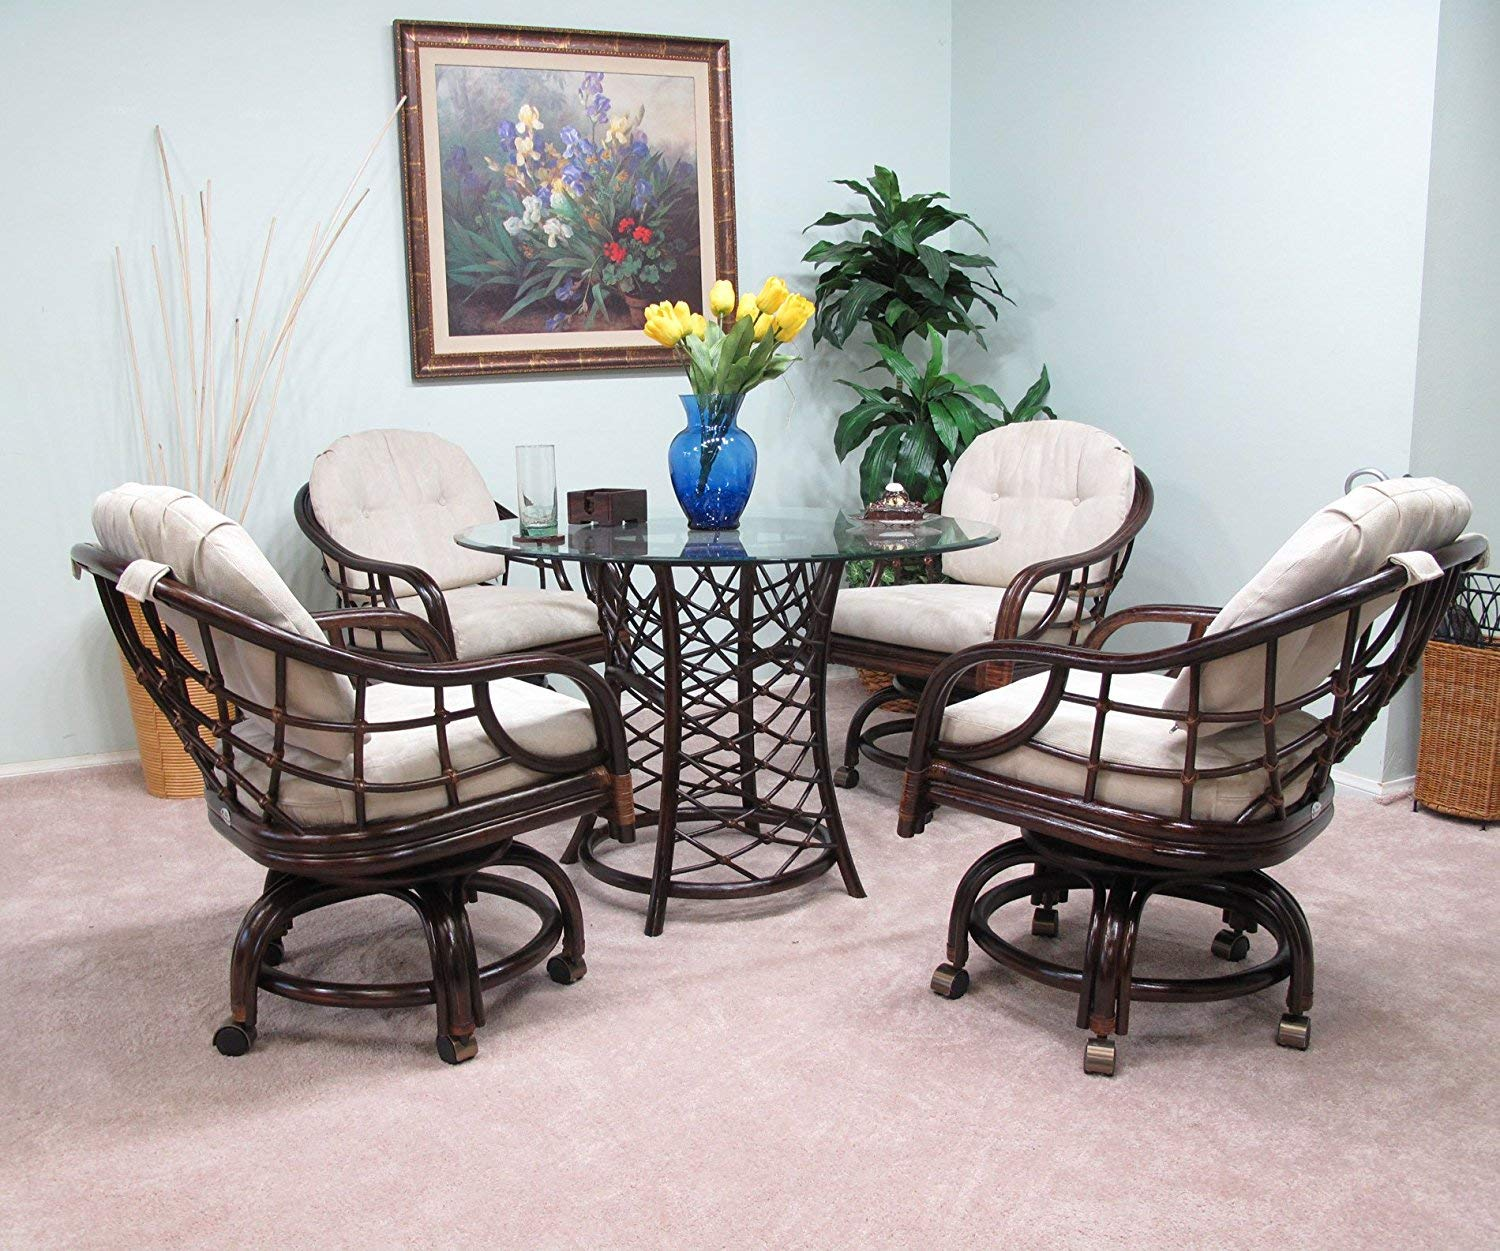 Made in USA Rattan Dining Caster Chair Table Gaming Furniture Newton 5PC Set Cappuccino Finish